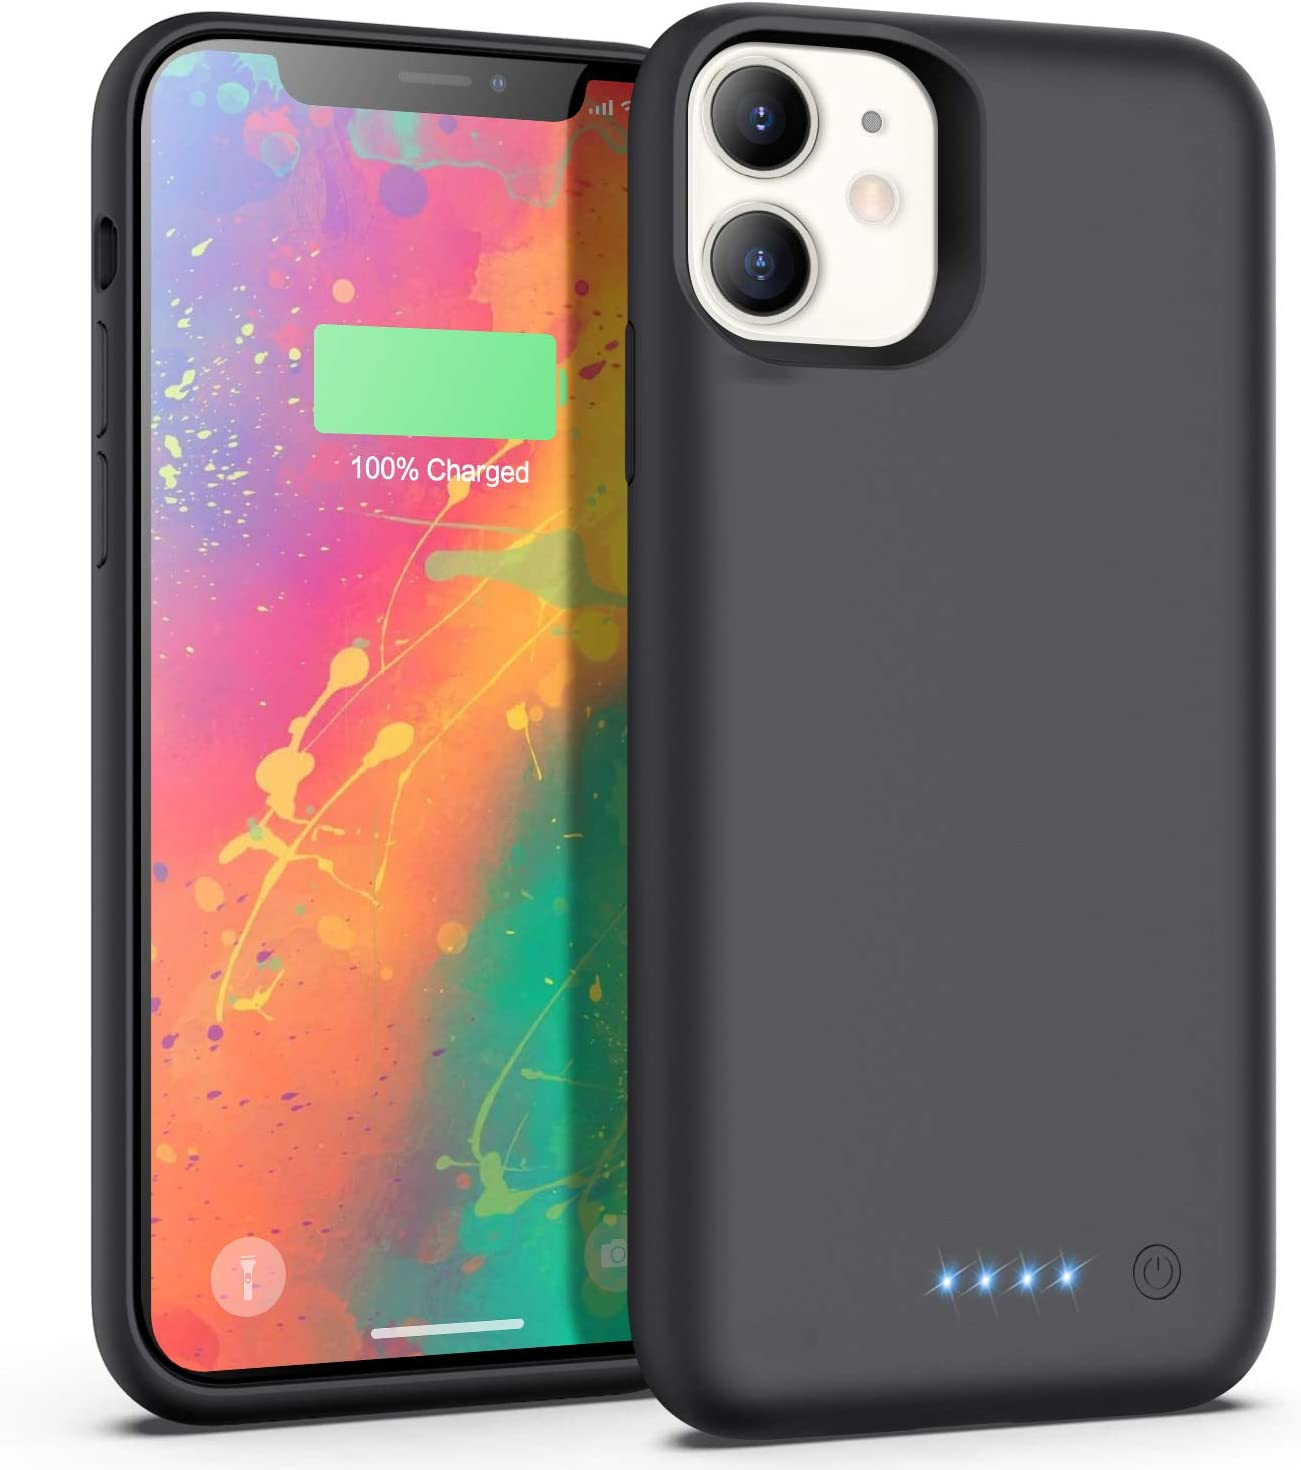 Feob Battery Case for iPhone 11, 6800mAh Portable Charging Case Extended Battery Pack for iPhone 11 Charger Case [6.1 inch]-Black